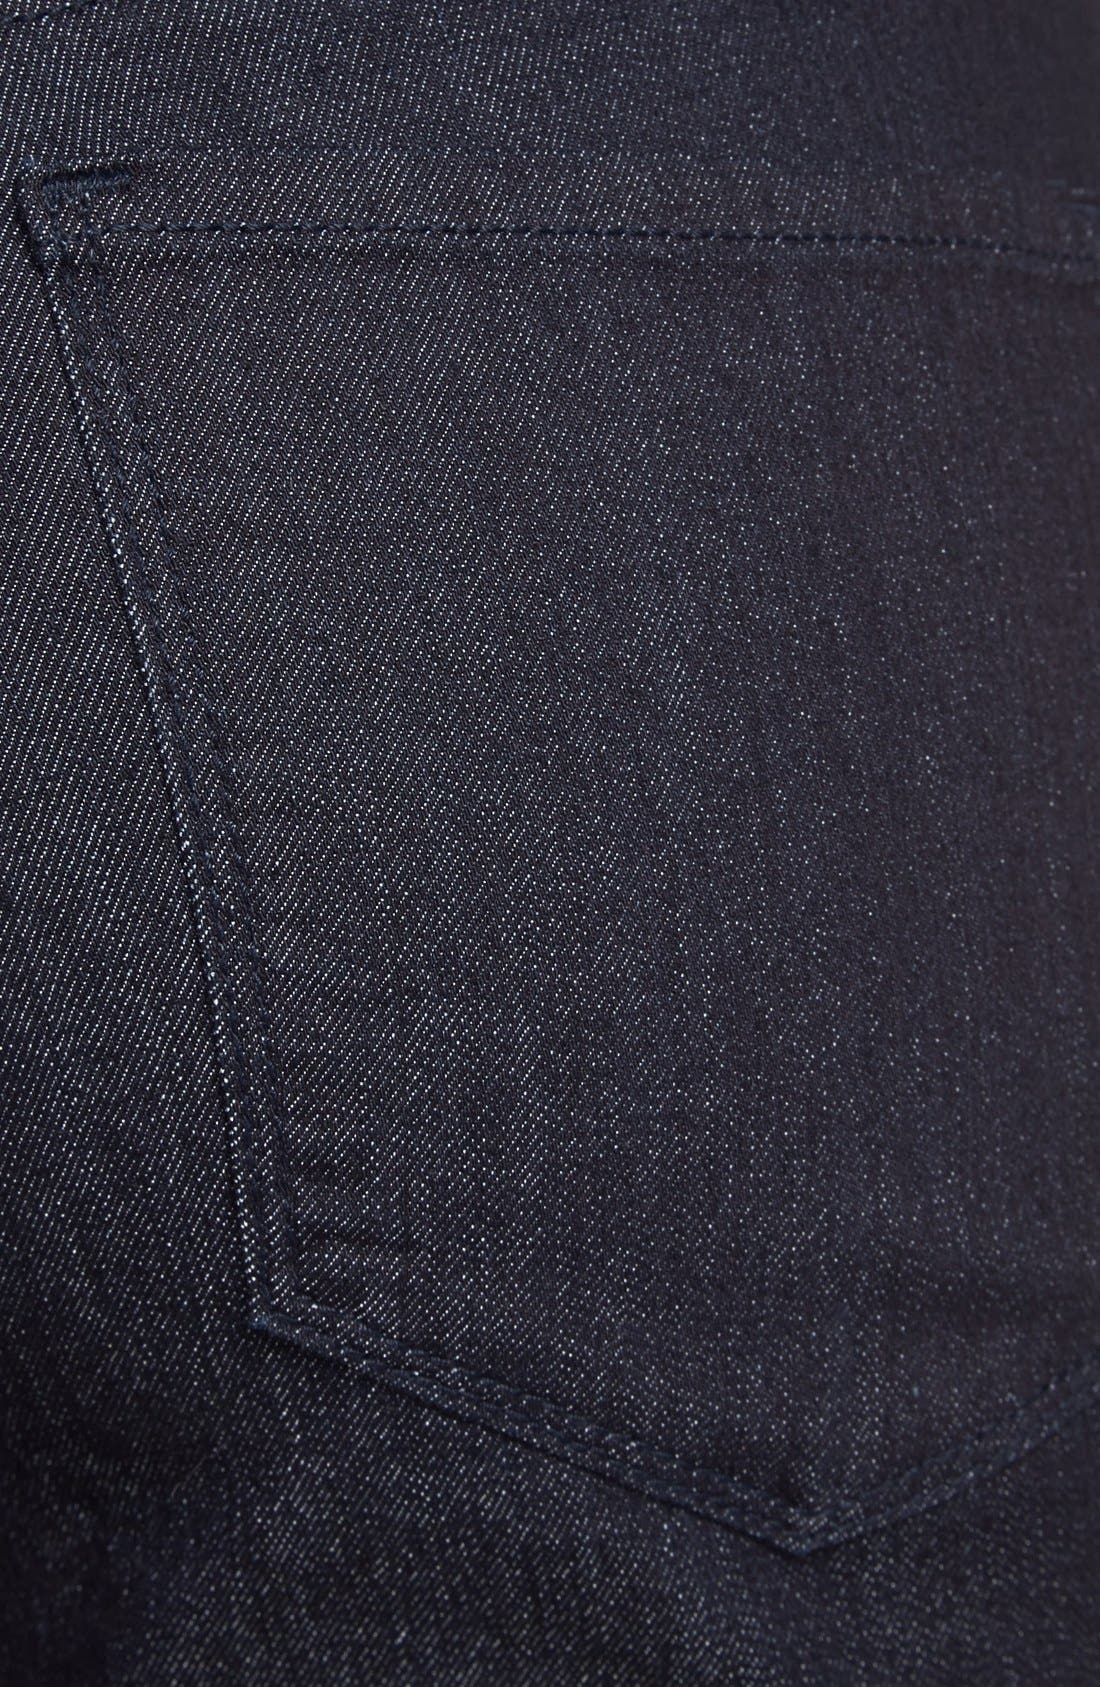 Alternate Image 3  - NYDJ 'Millie' Pull-On Stretch Fitted Ankle Jeans (Dark Enzyme) (Regular & Petite)